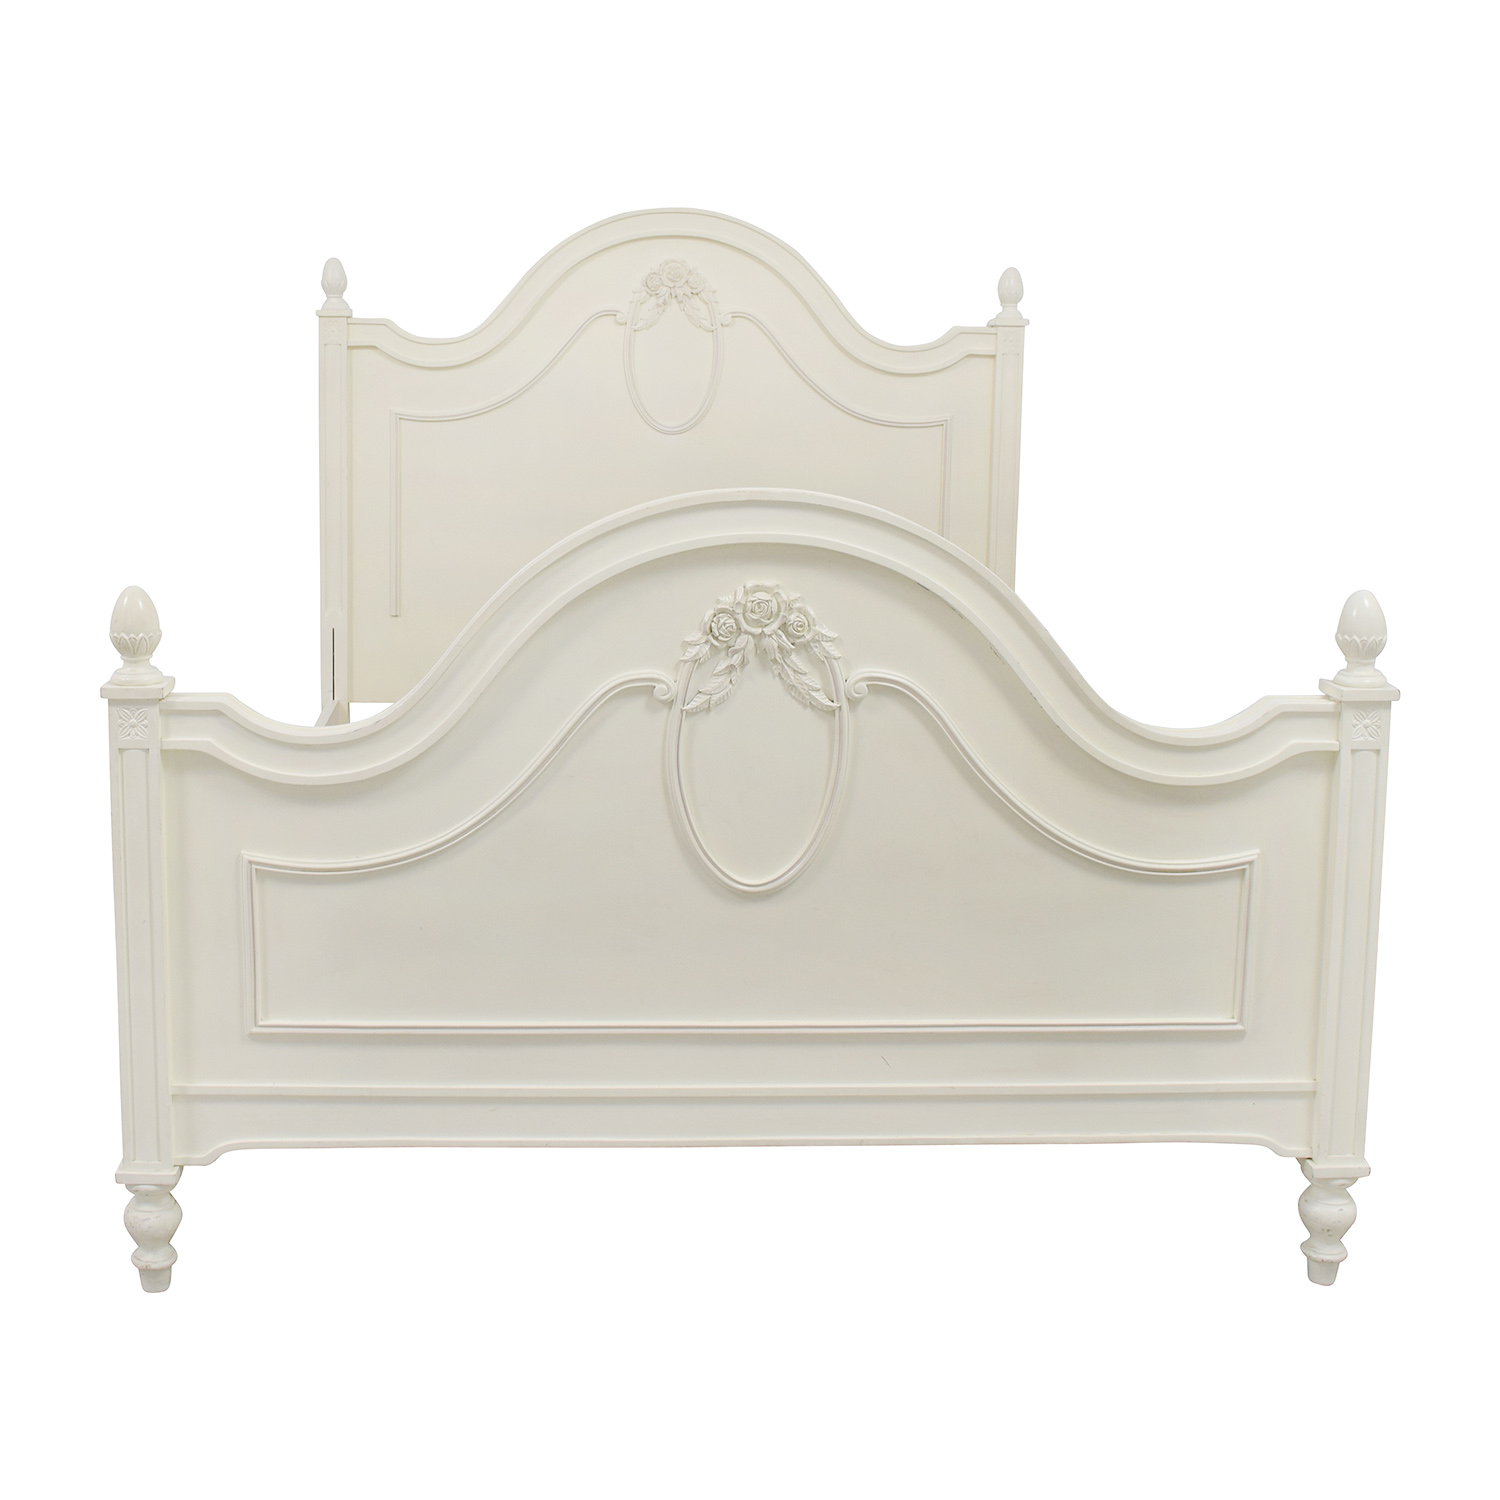 Stanley Furniture Isabella Cameo White Low Post Full Bed / Bed Frames